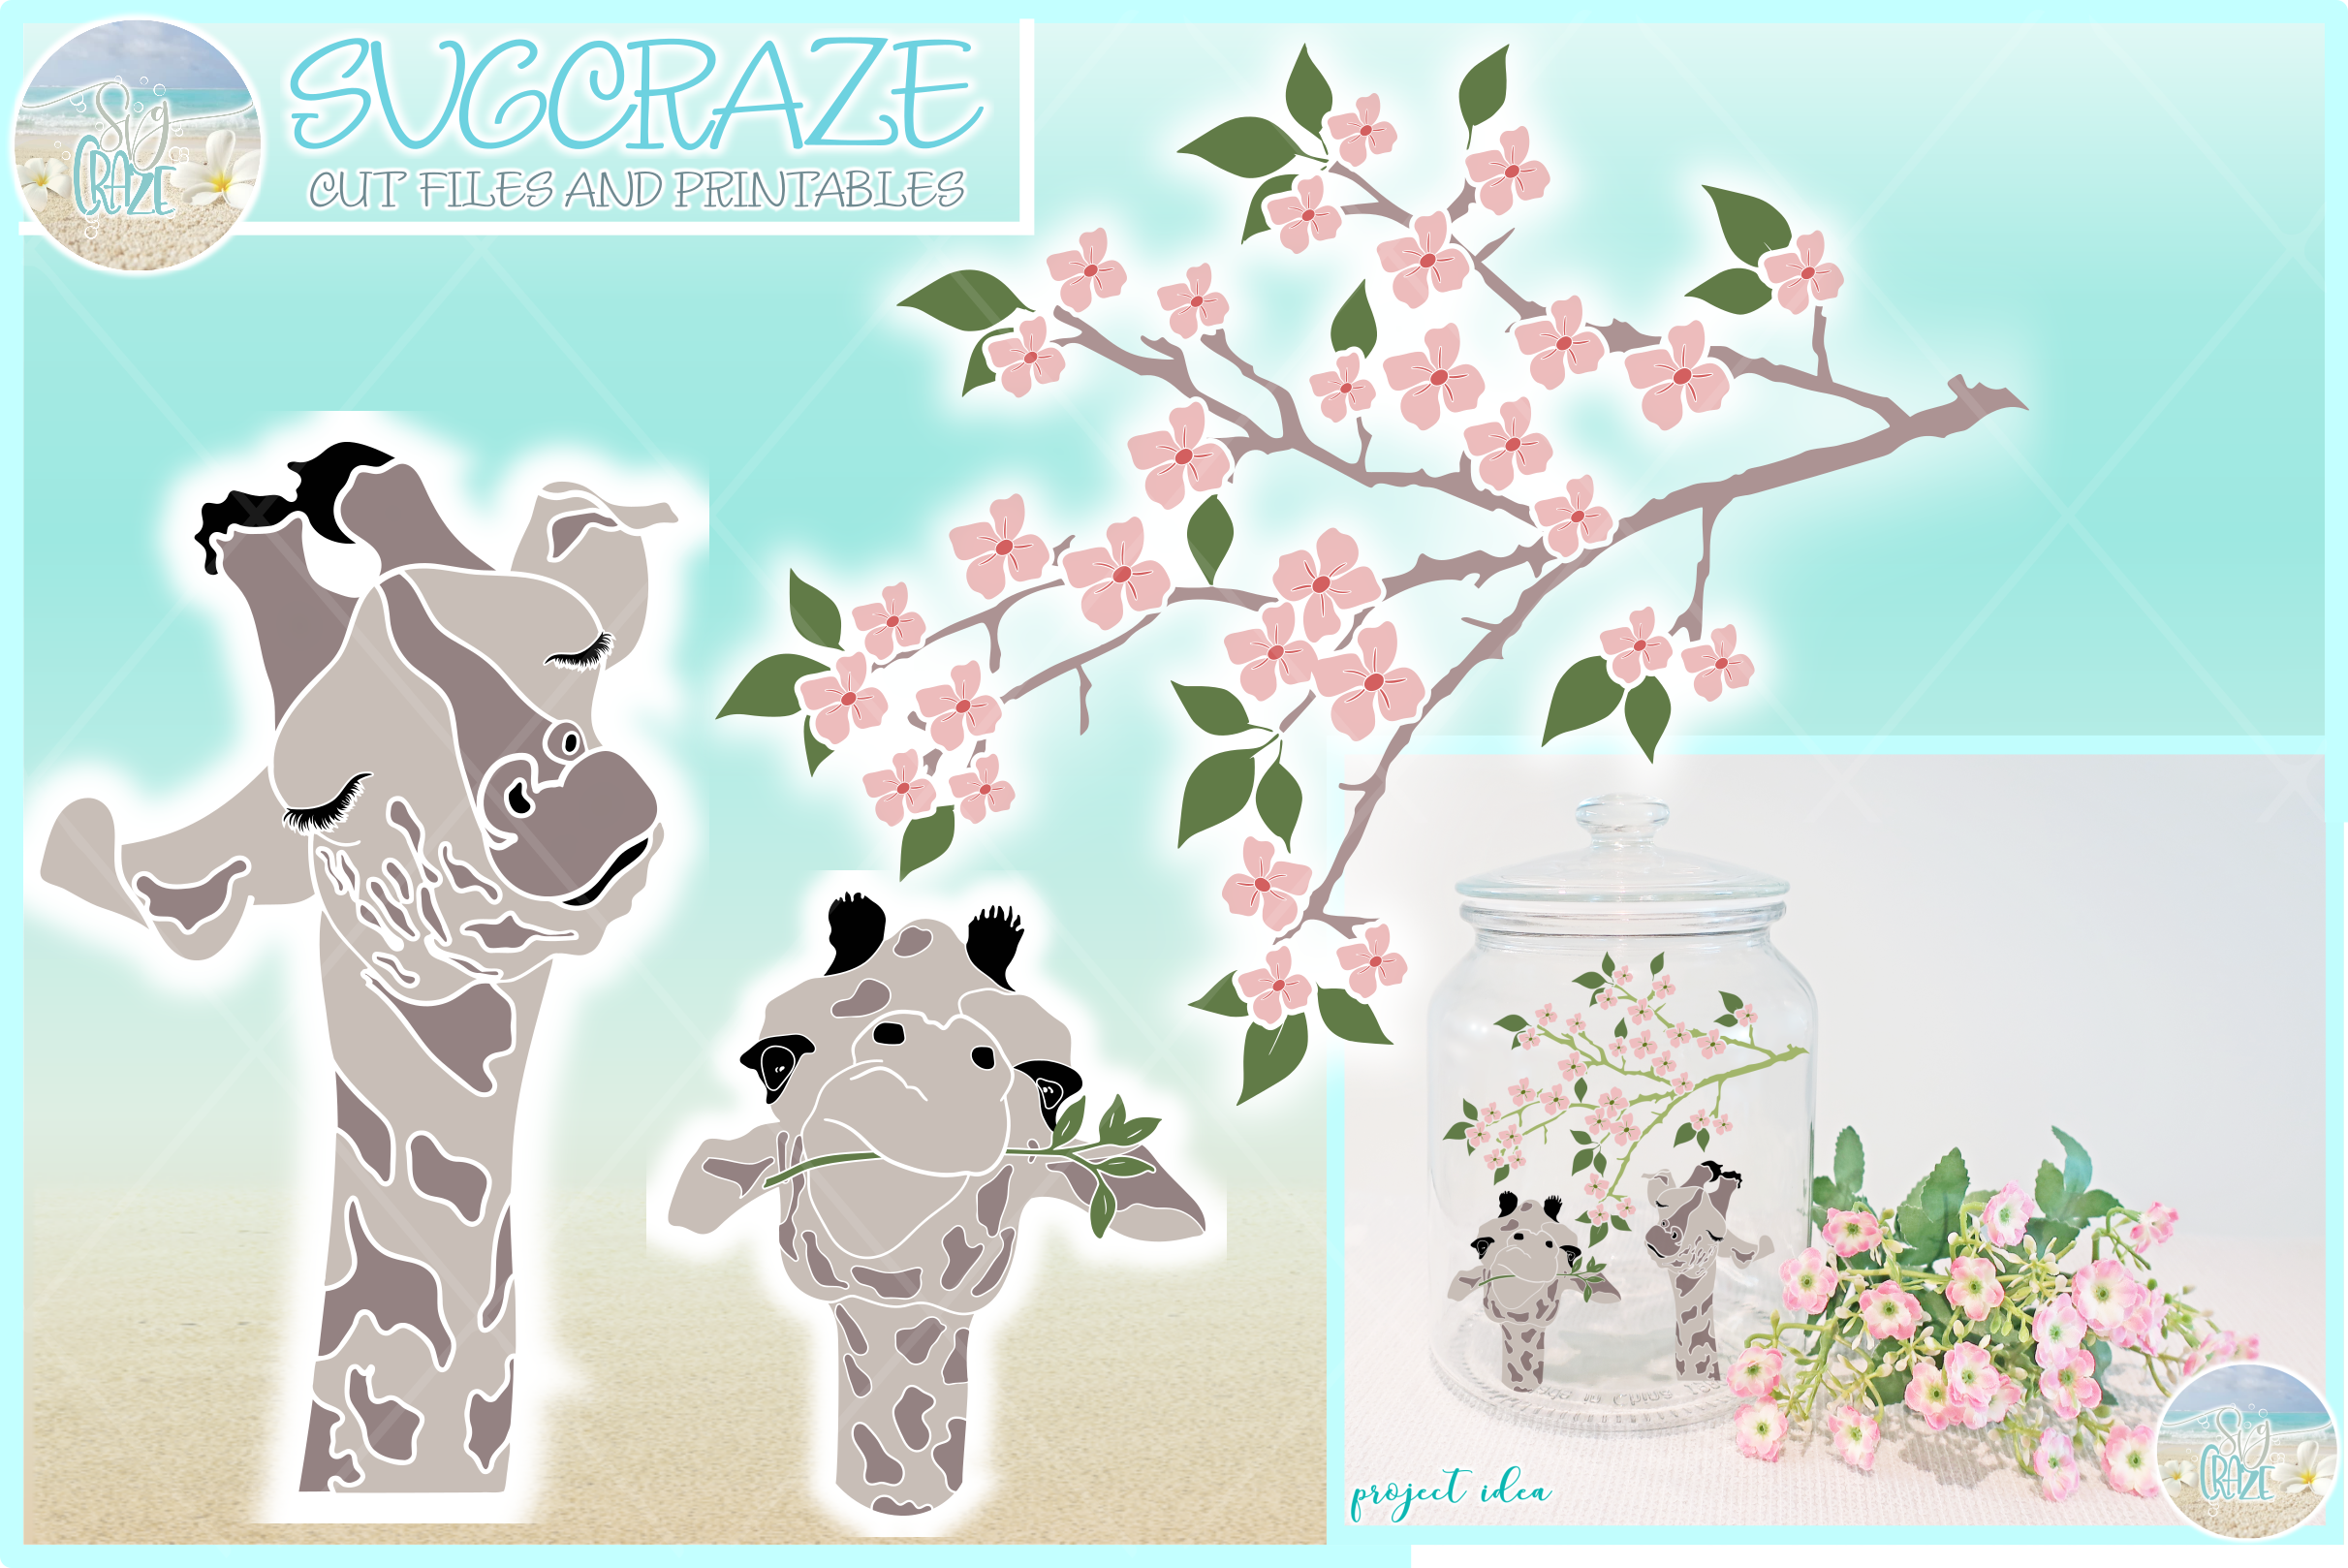 Cute Giraffe Faces with Flowering Tree Limb Svg Dxf Eps Png example image 1